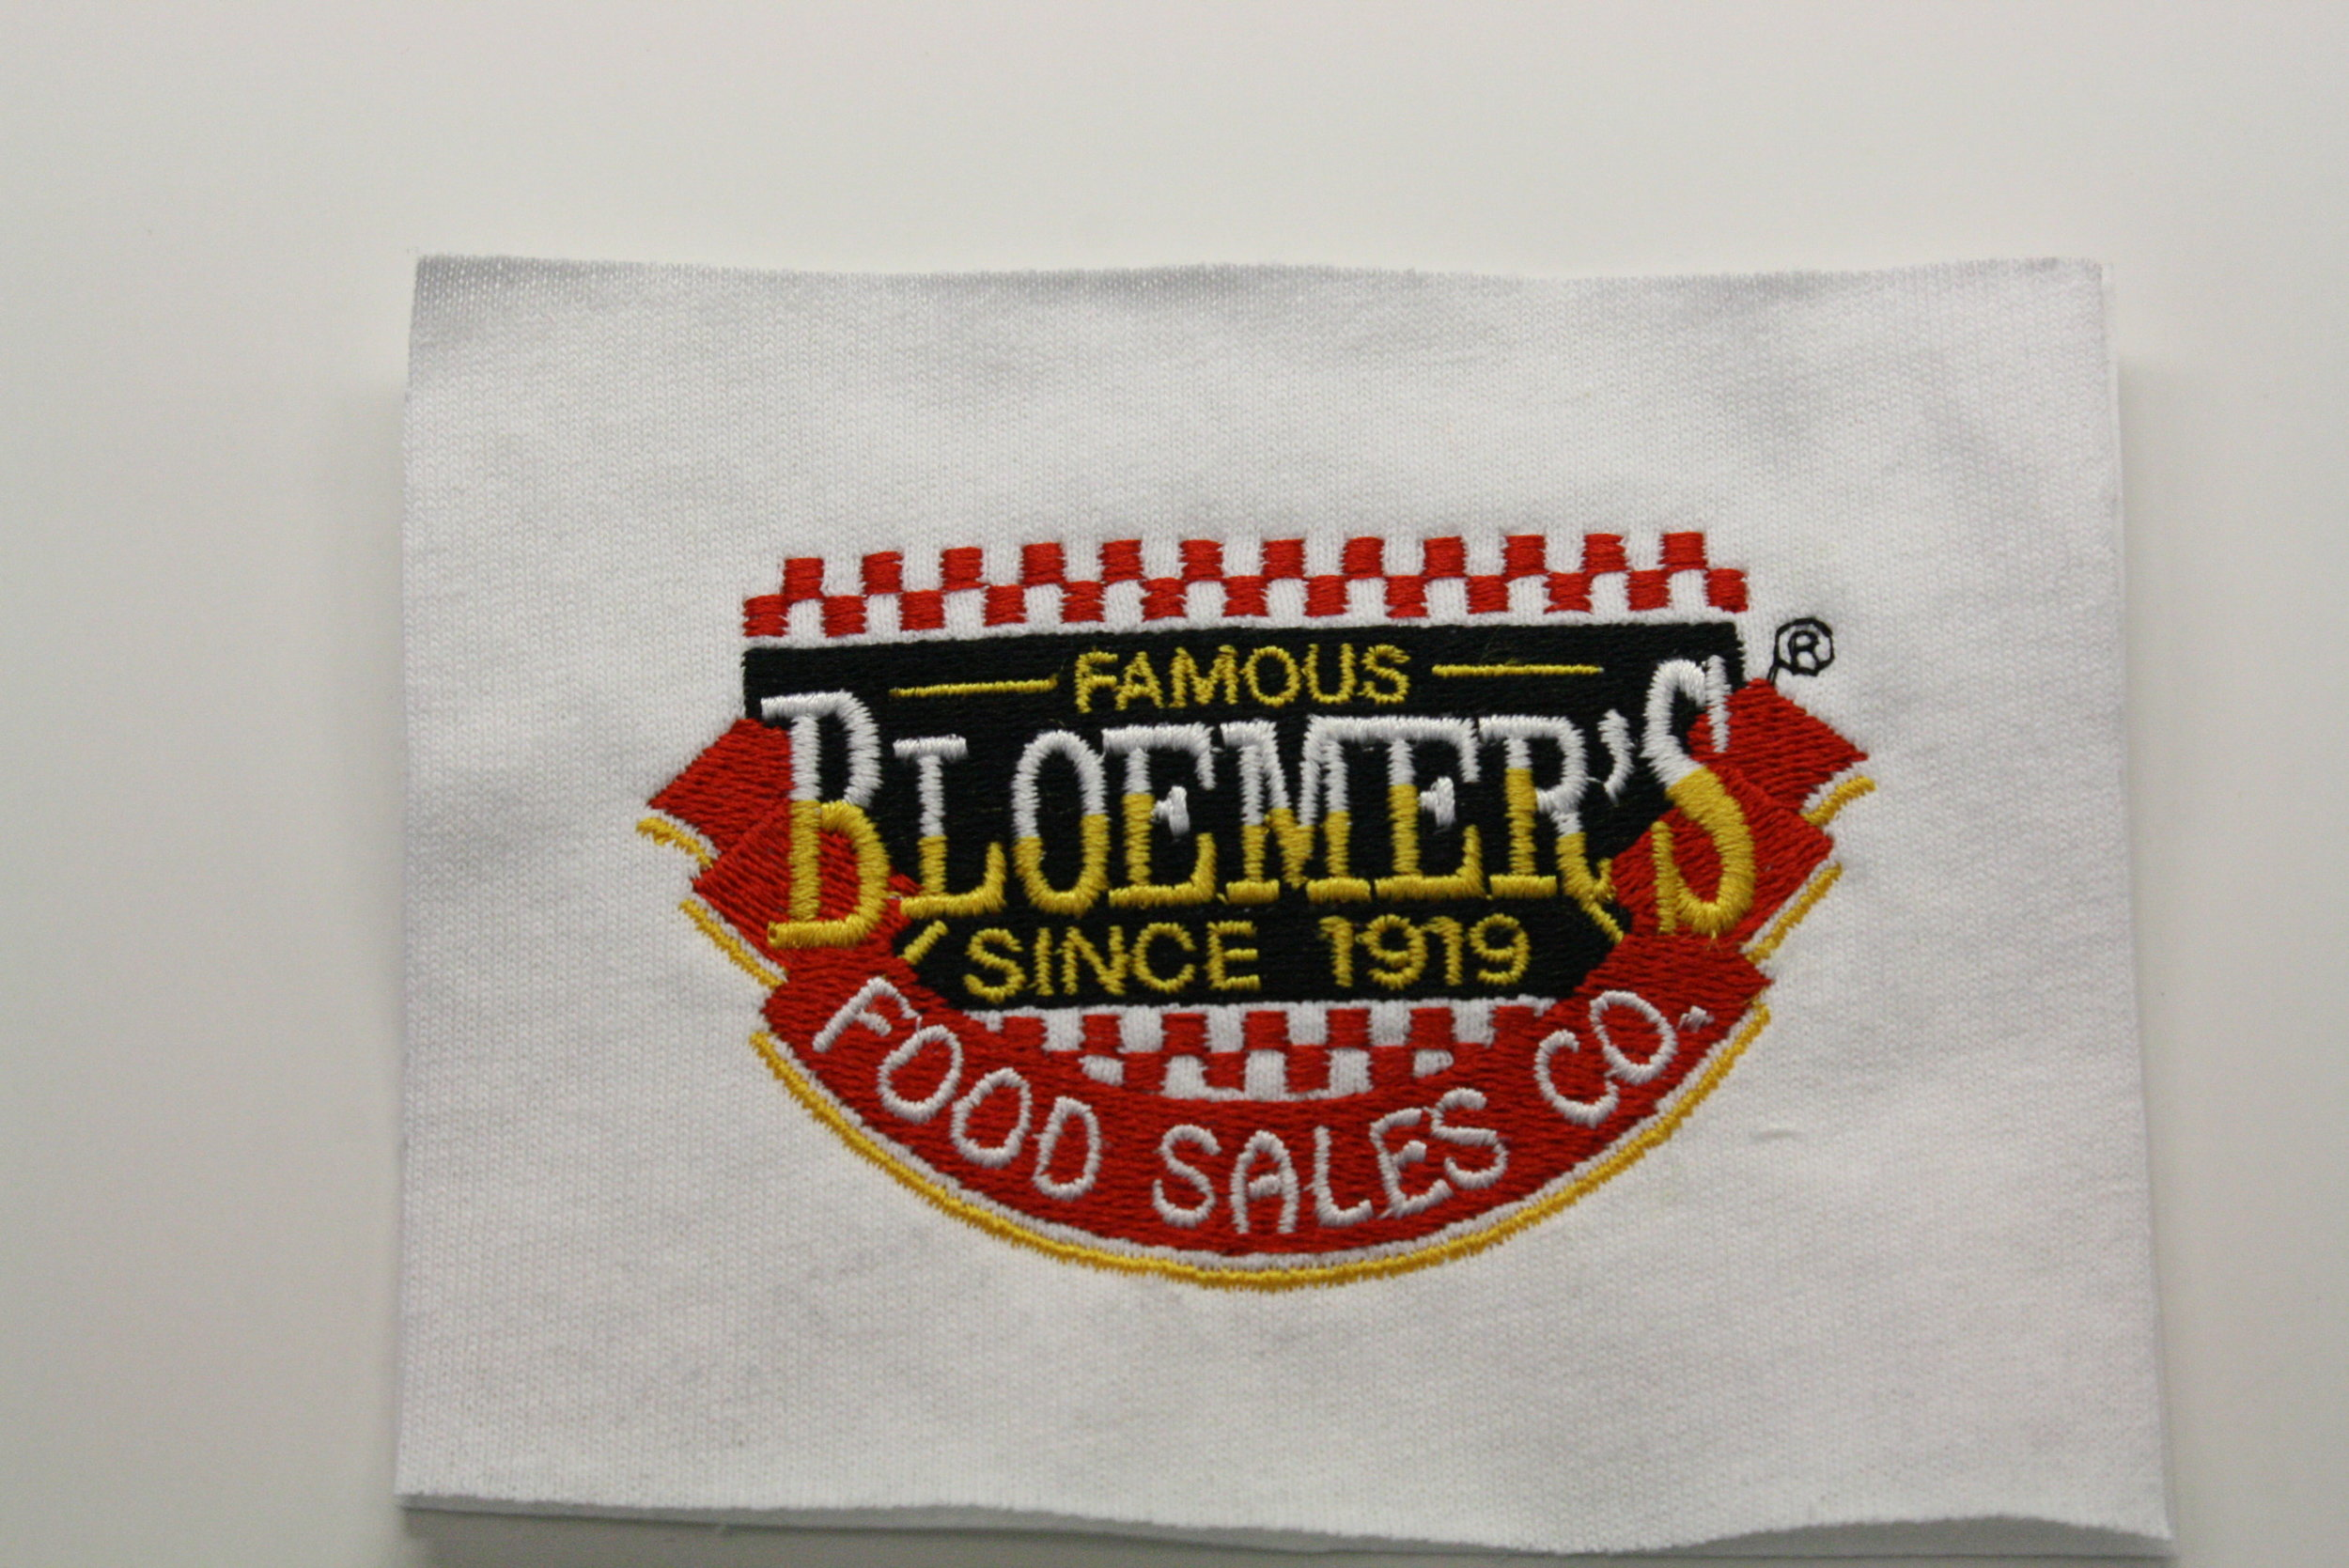 A sew out sample of Louisville's Bloemer's Food Sales logo.